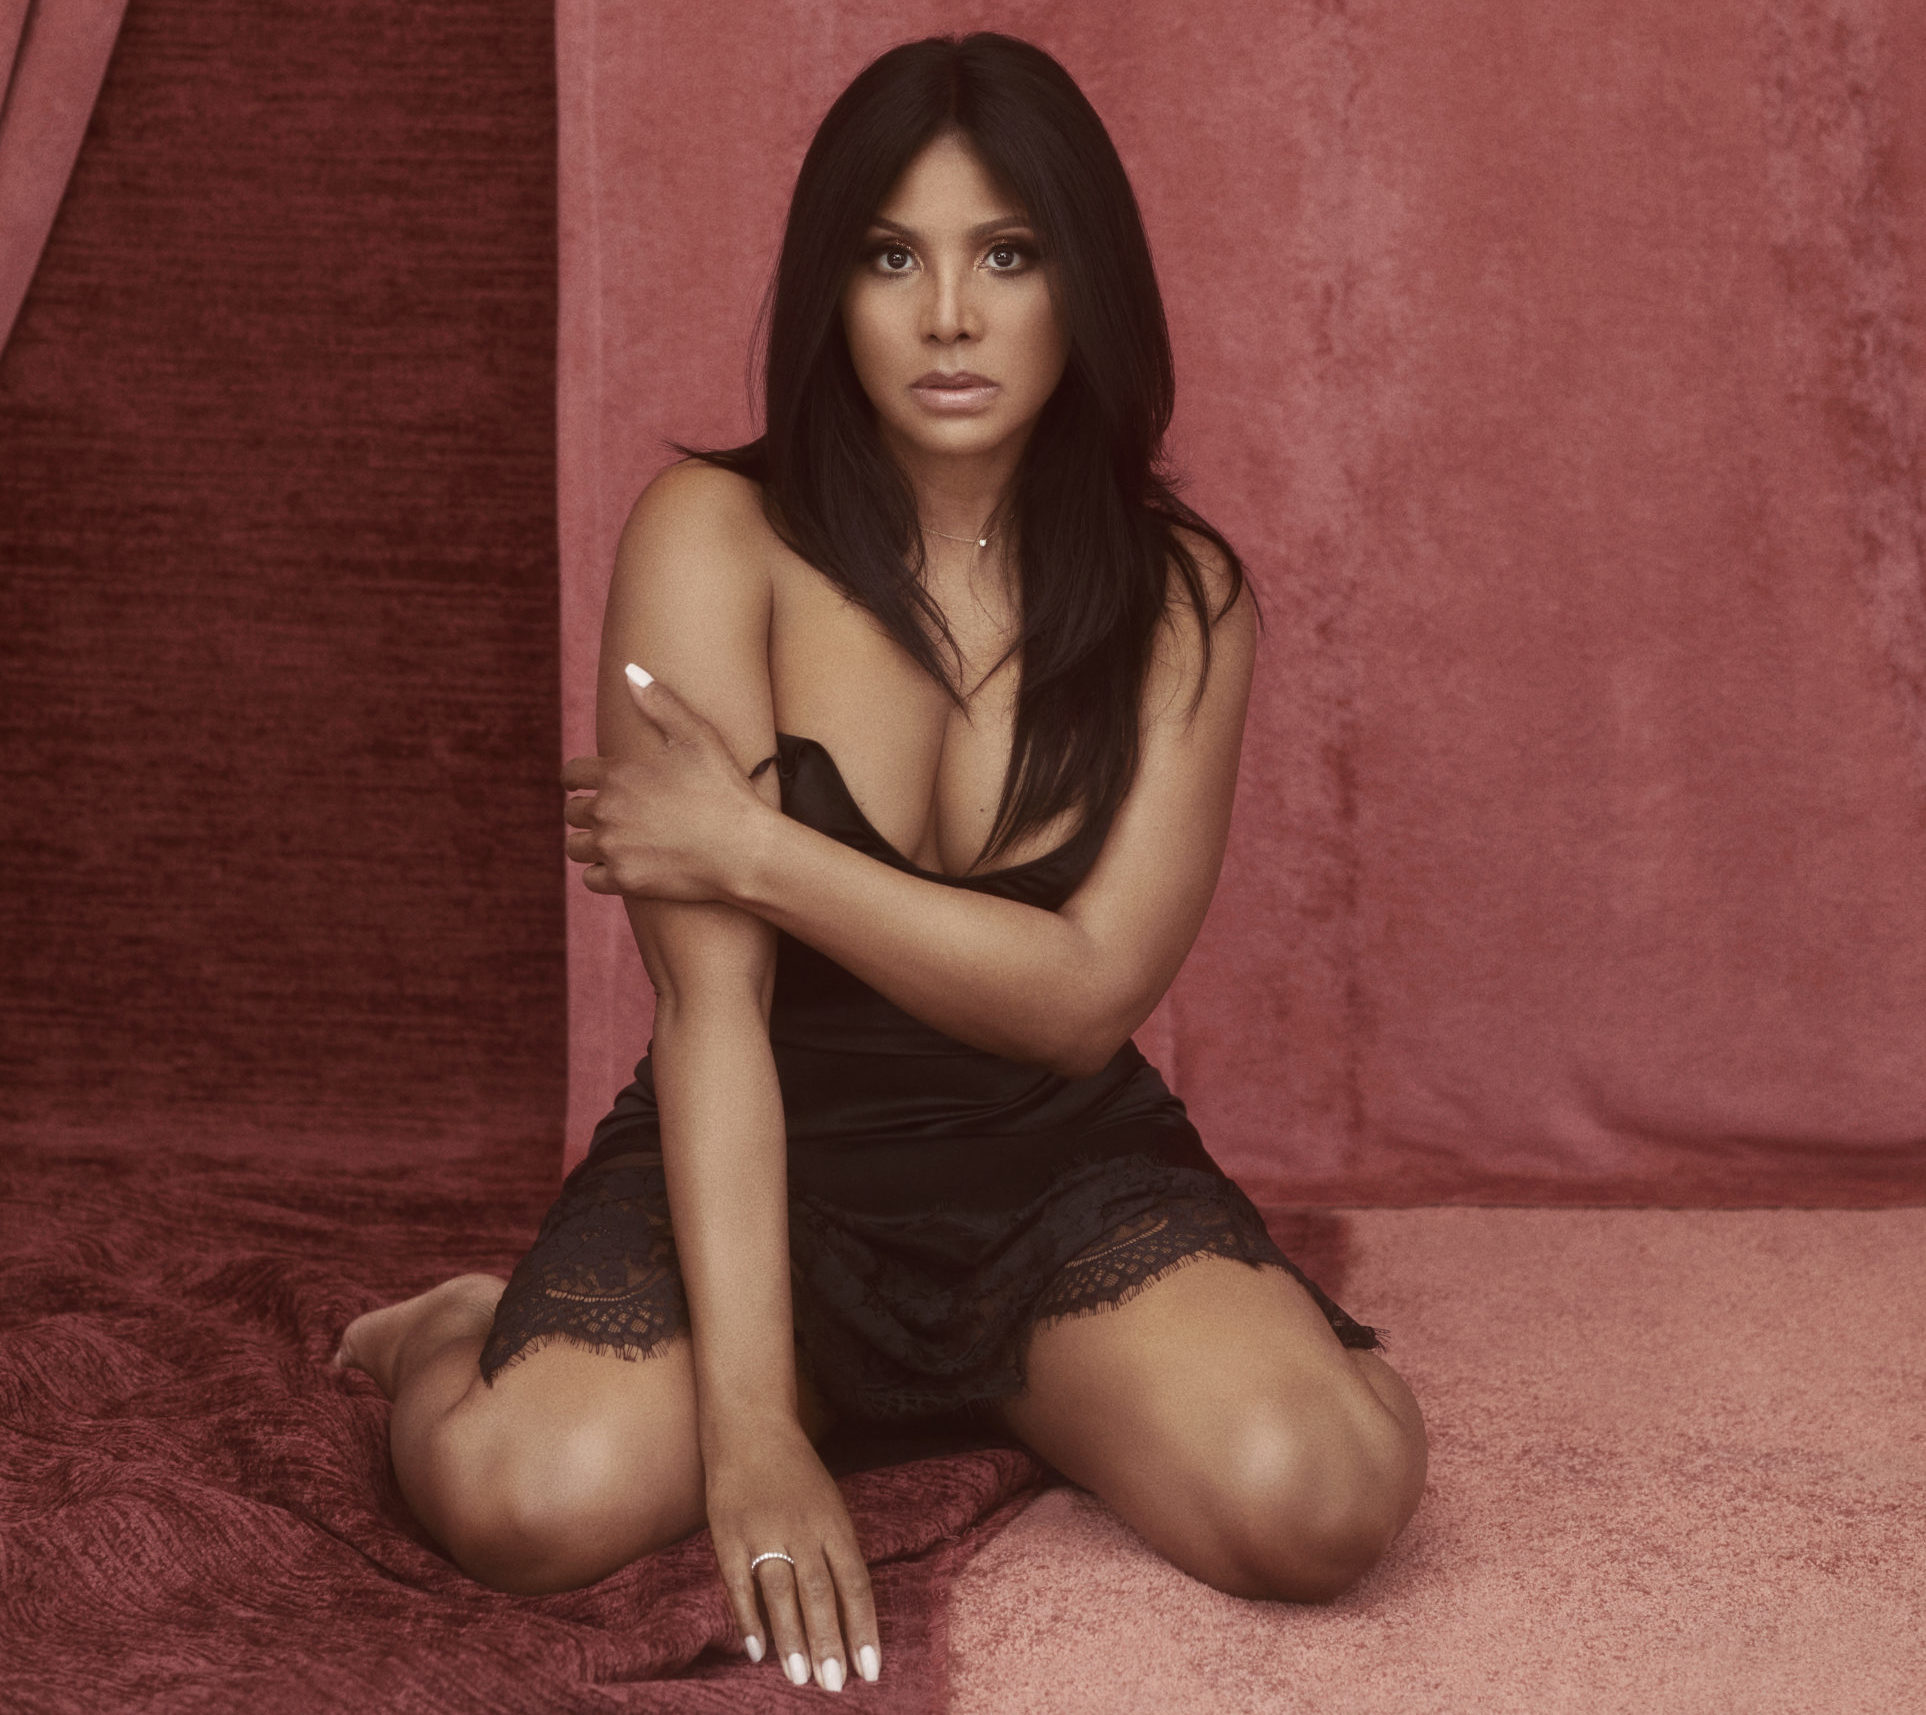 Taking Us Higher: Toni Braxton